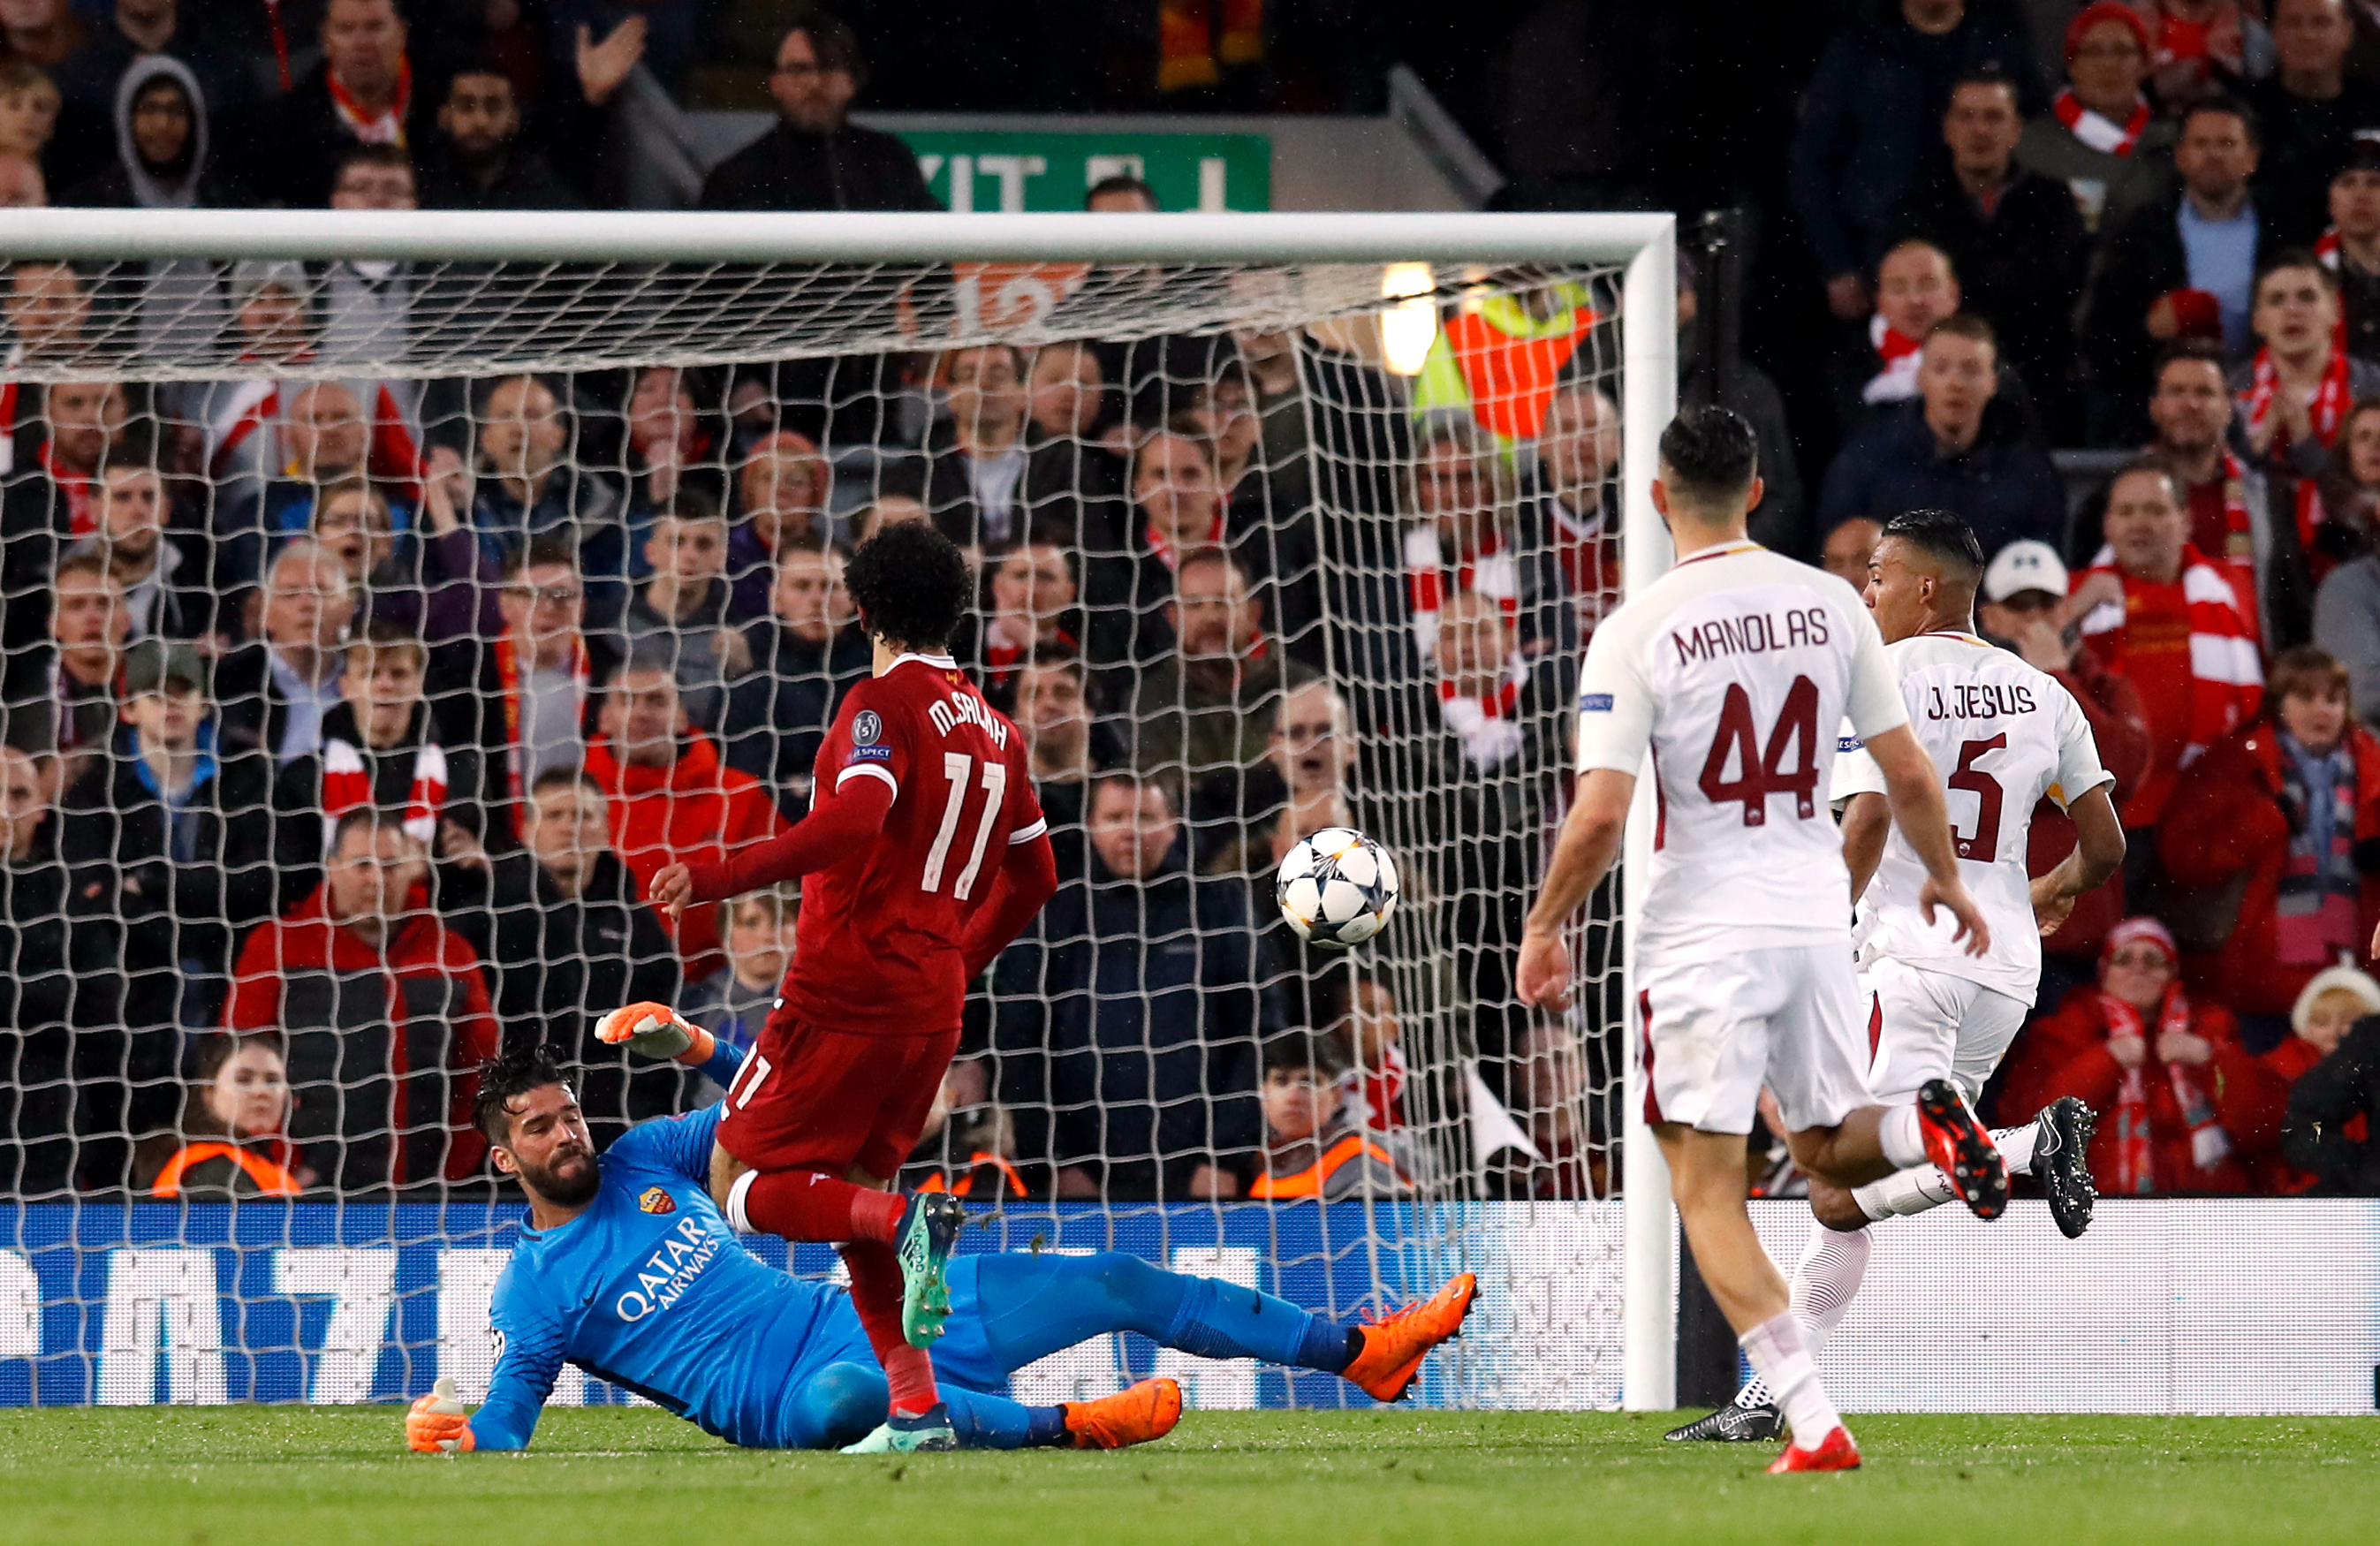 Liverpool relief as Salah avoids three-match ban for Martins Indi clash